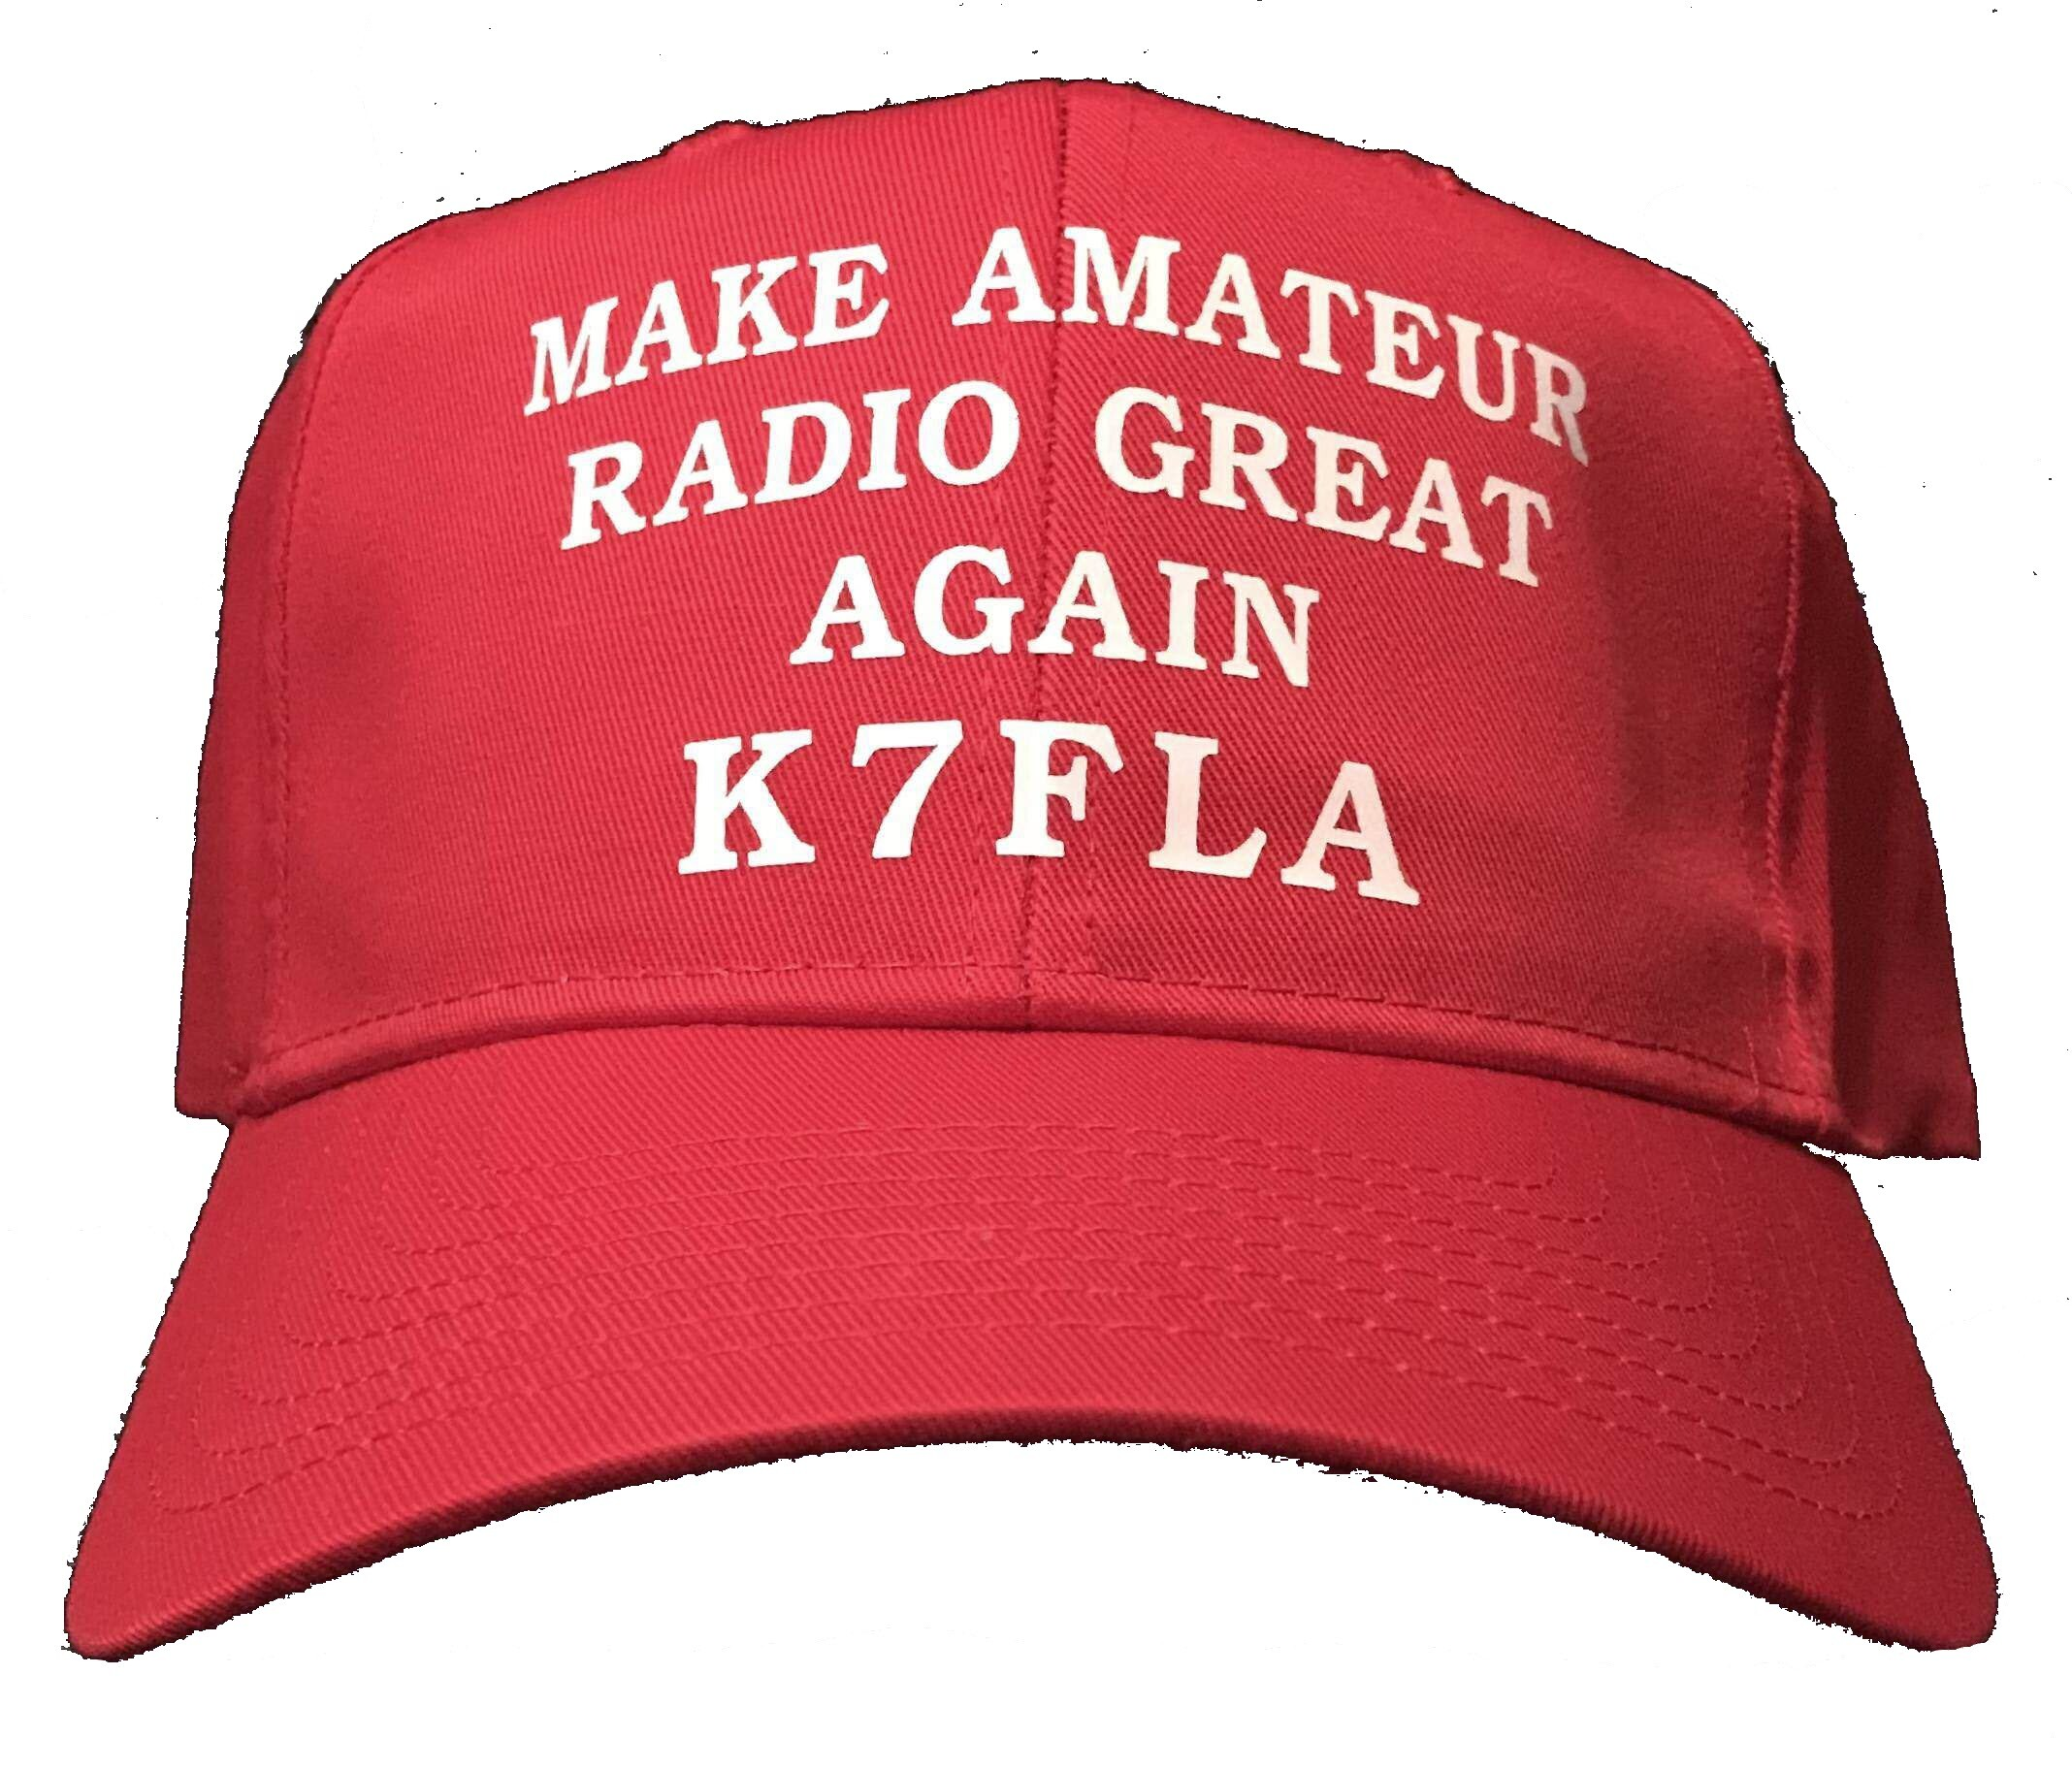 Make Amateur Radio Great Again - K7FLA